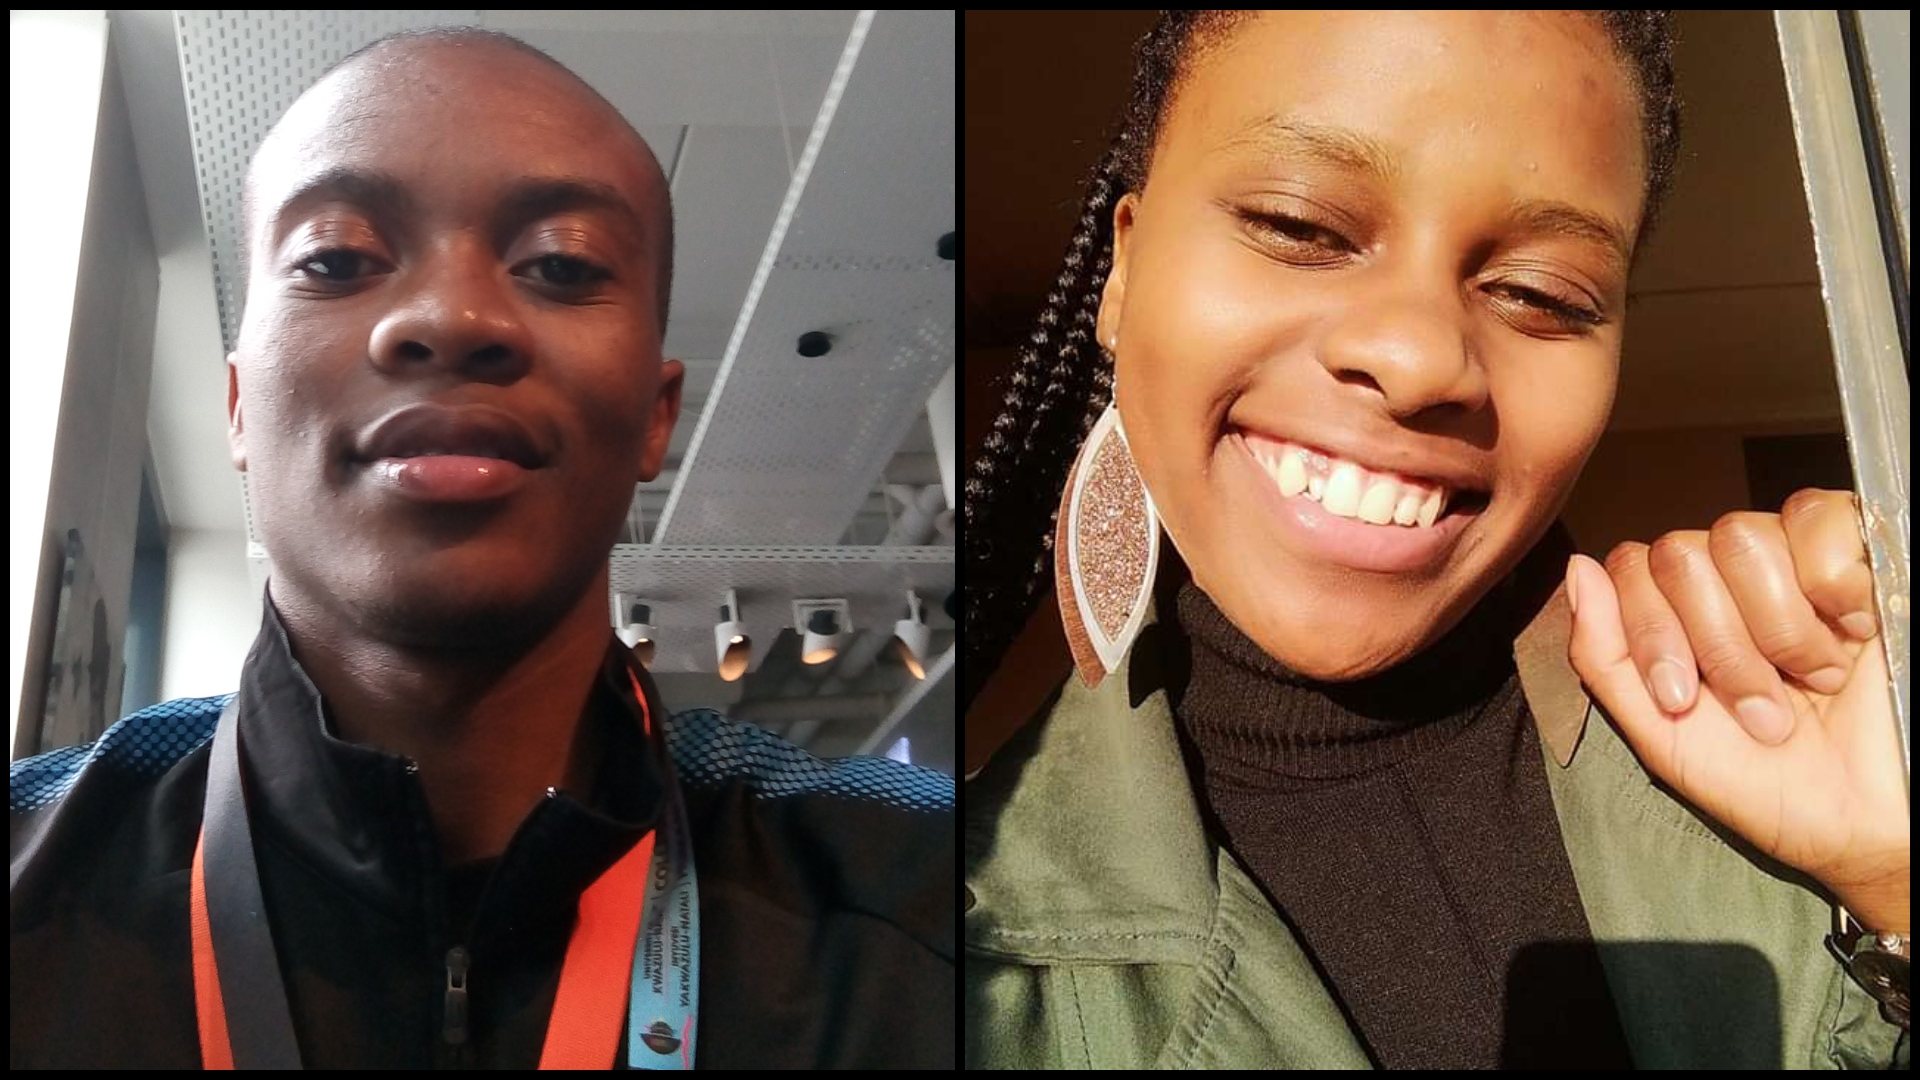 Mr Luthando Molefe of UKZN and Ms Kgotsofalang Mei of the University of Fort Hare